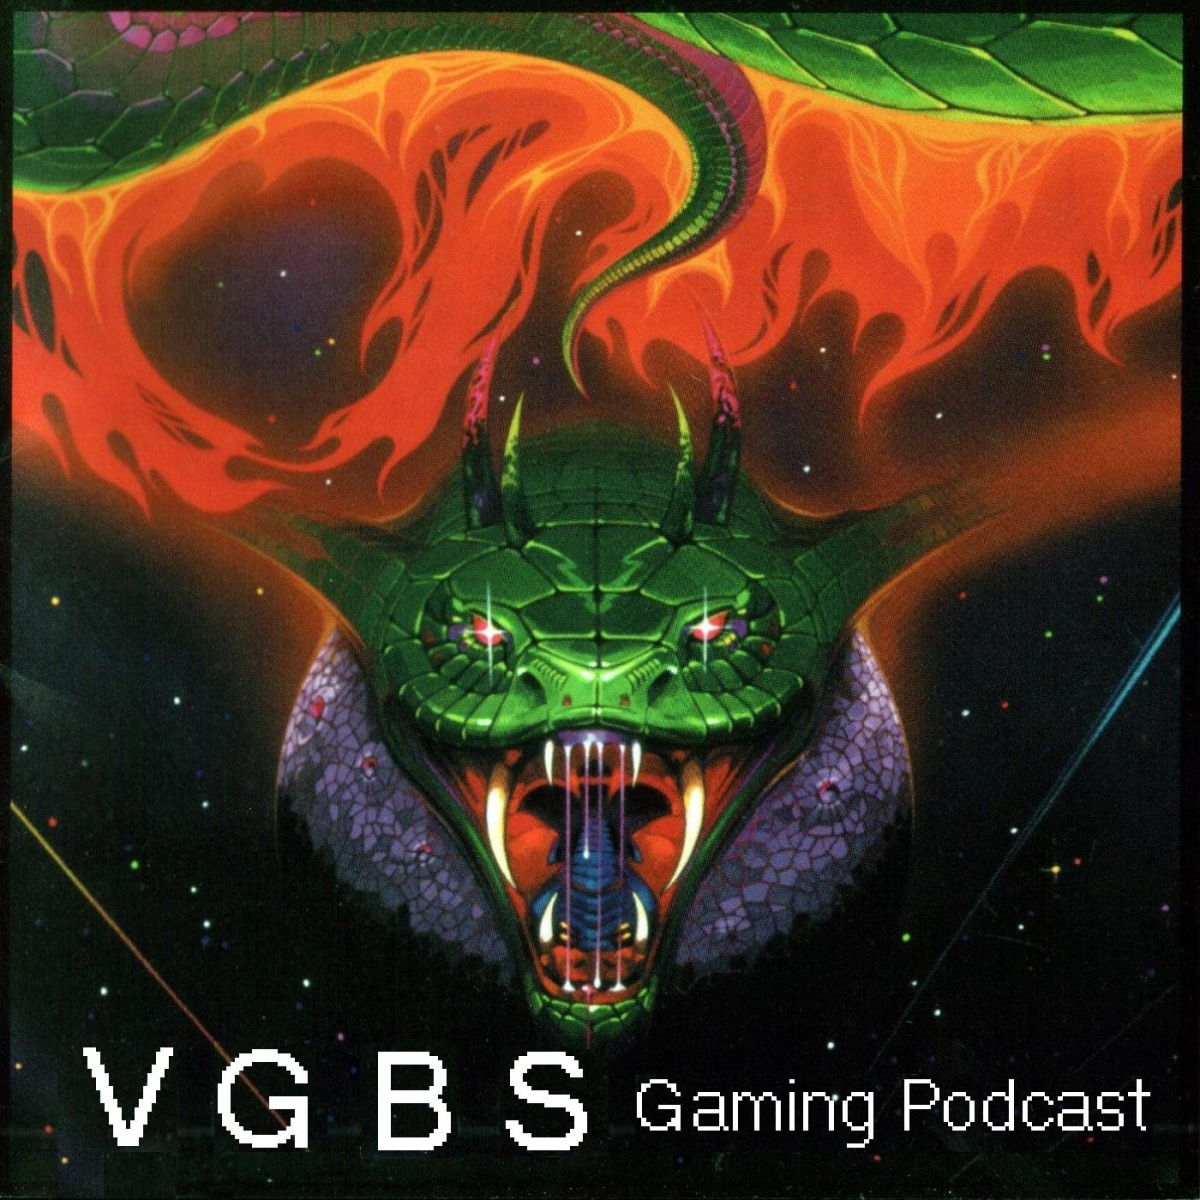 VGBS Gaming Podcast